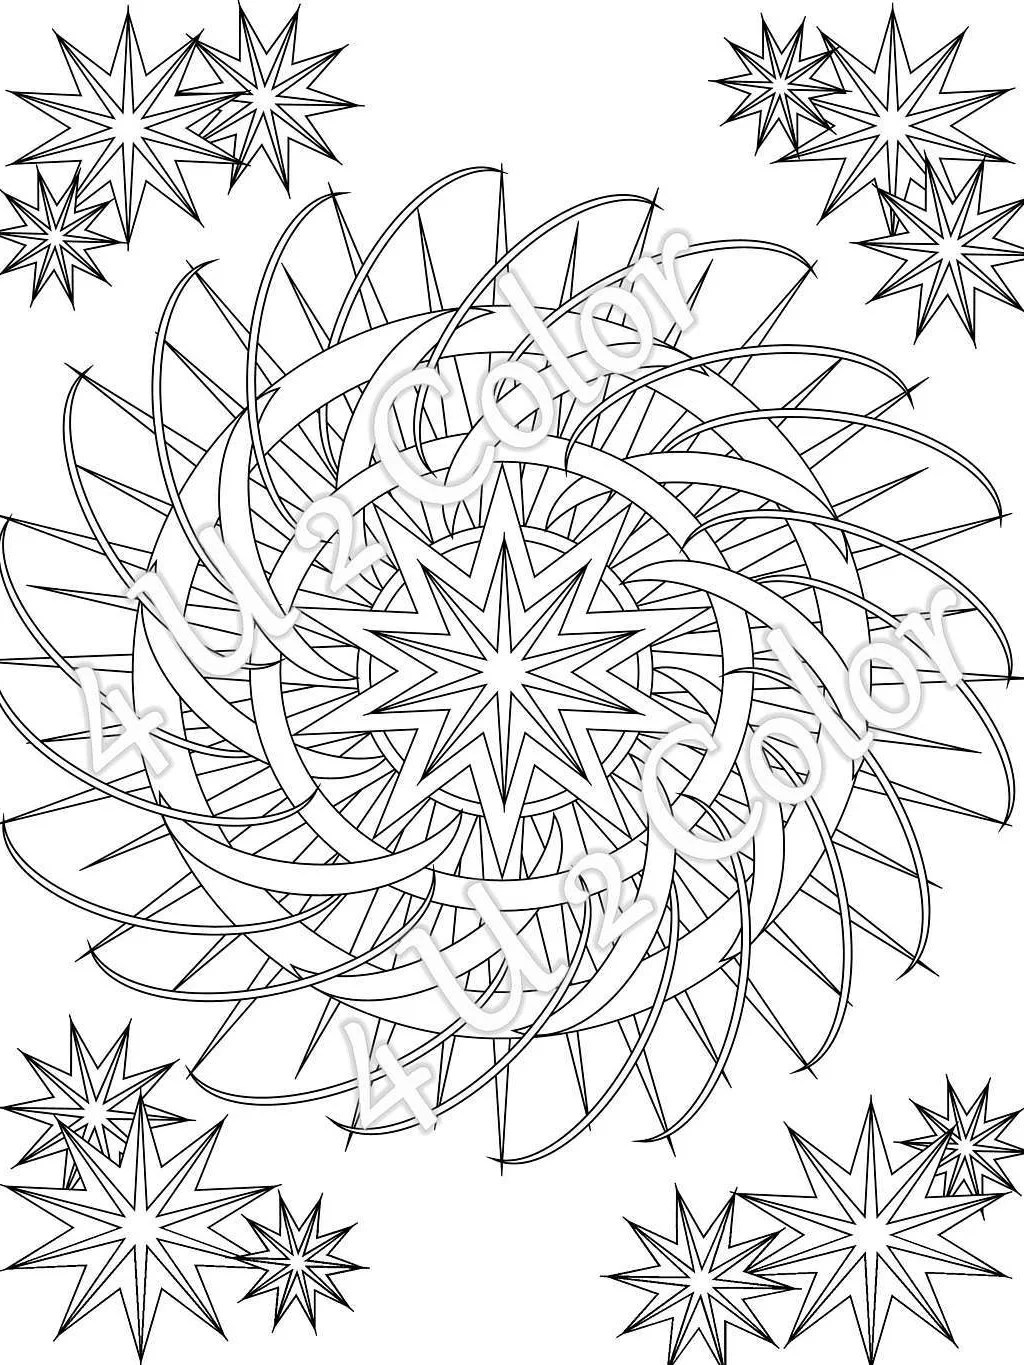 Patchwork Quilt Page Coloring Pages